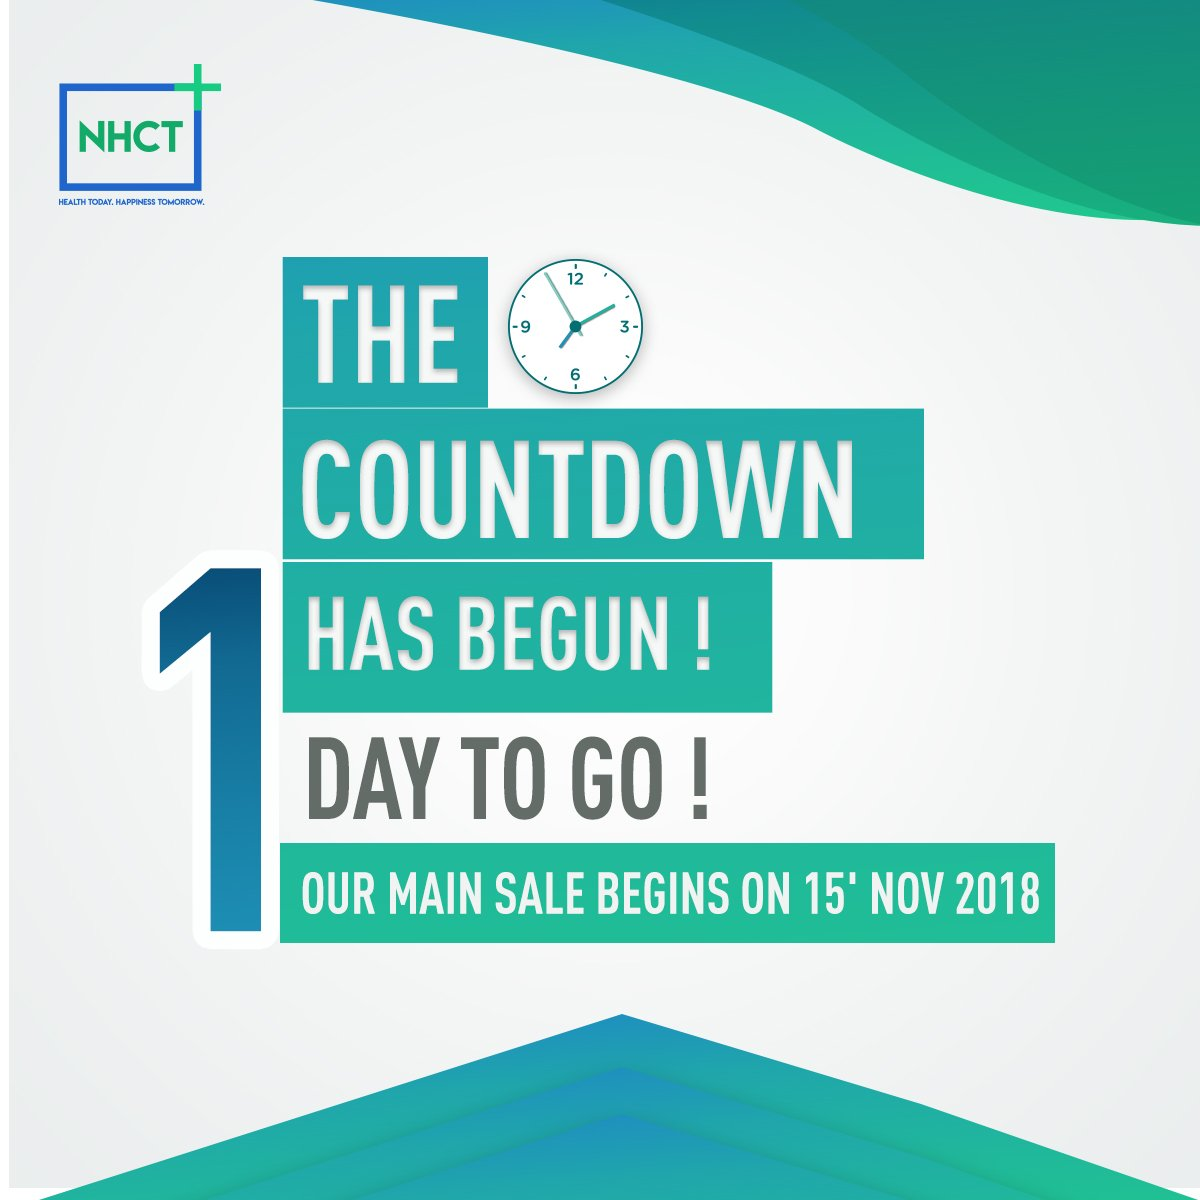 The day you have waited for is finally here. Our main sale begins on 15&#39;Nov 2018. Just 1 more day to go!  #healthcare #blockchain #technology #data #innovation #NHCT #ethereum #MainSale<br>http://pic.twitter.com/OY4QTLUGIY